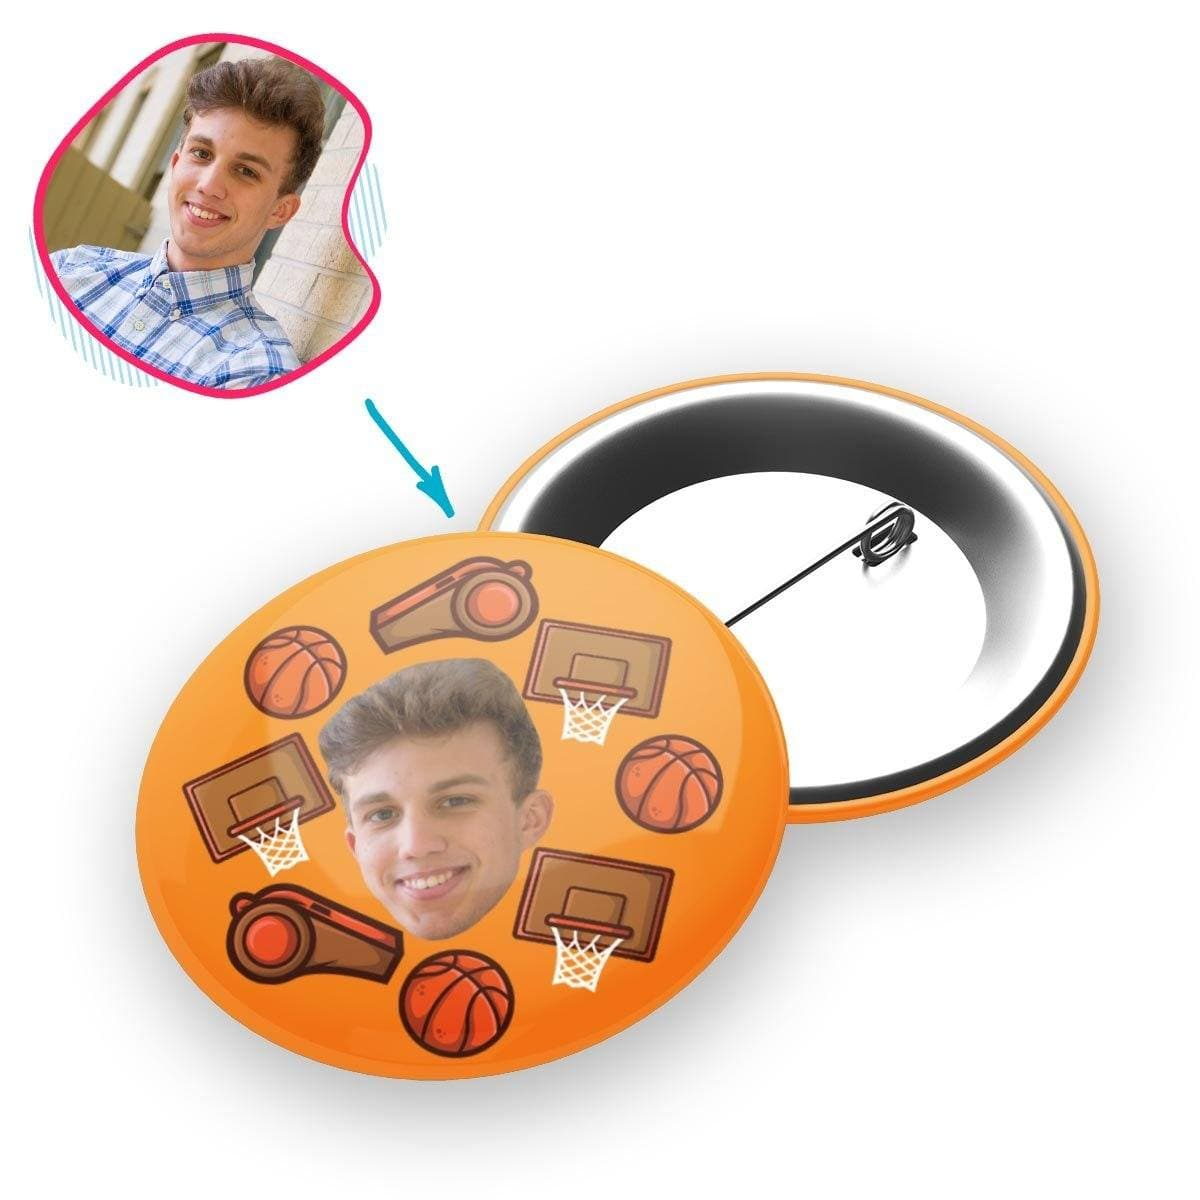 orange Basketball pin personalized with photo of face printed on it